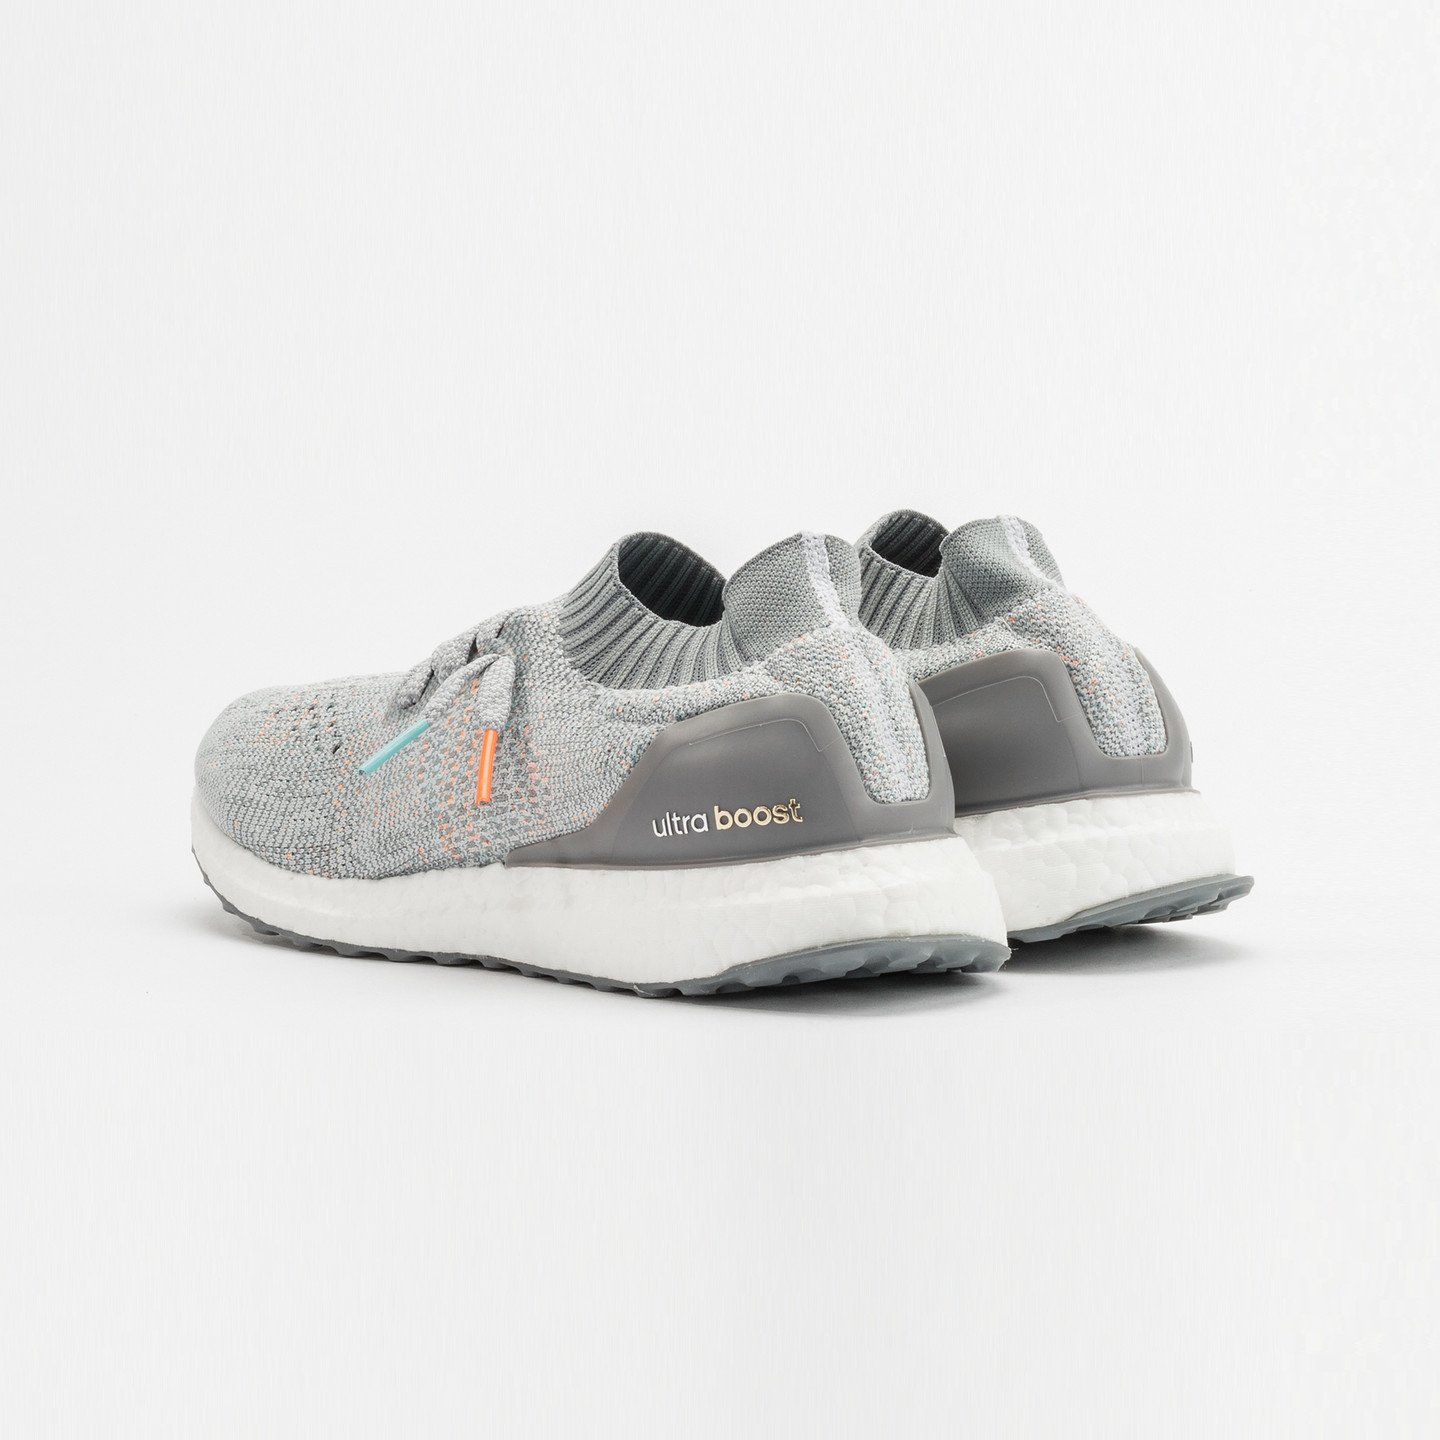 Adidas Ultra Boost Uncaged 'Miami Dolphins' Clear Grey / Mid Grey / Orange / Aqua BB4489-42